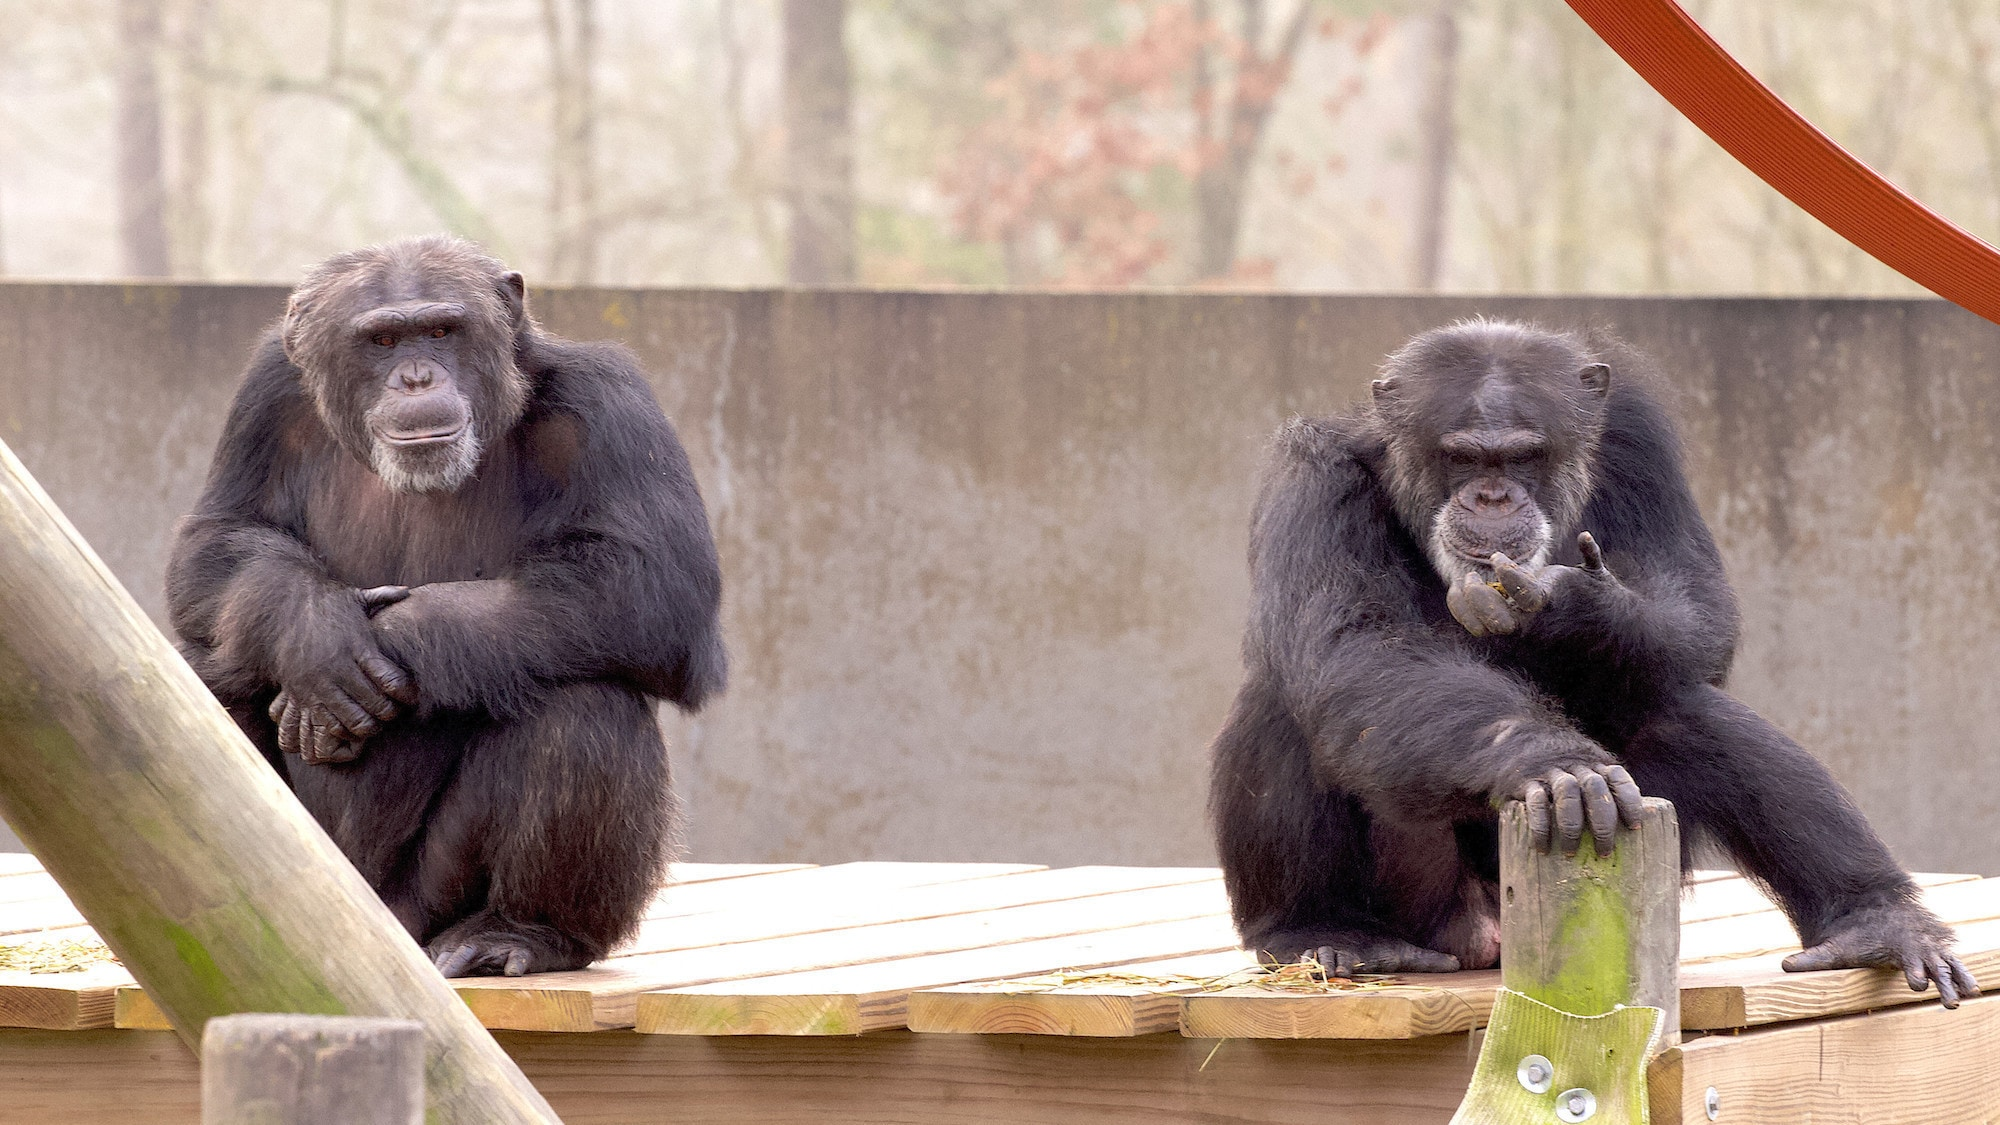 Chimps sat on wooden platform facing camera. (National Geographic/Jack Chapman)